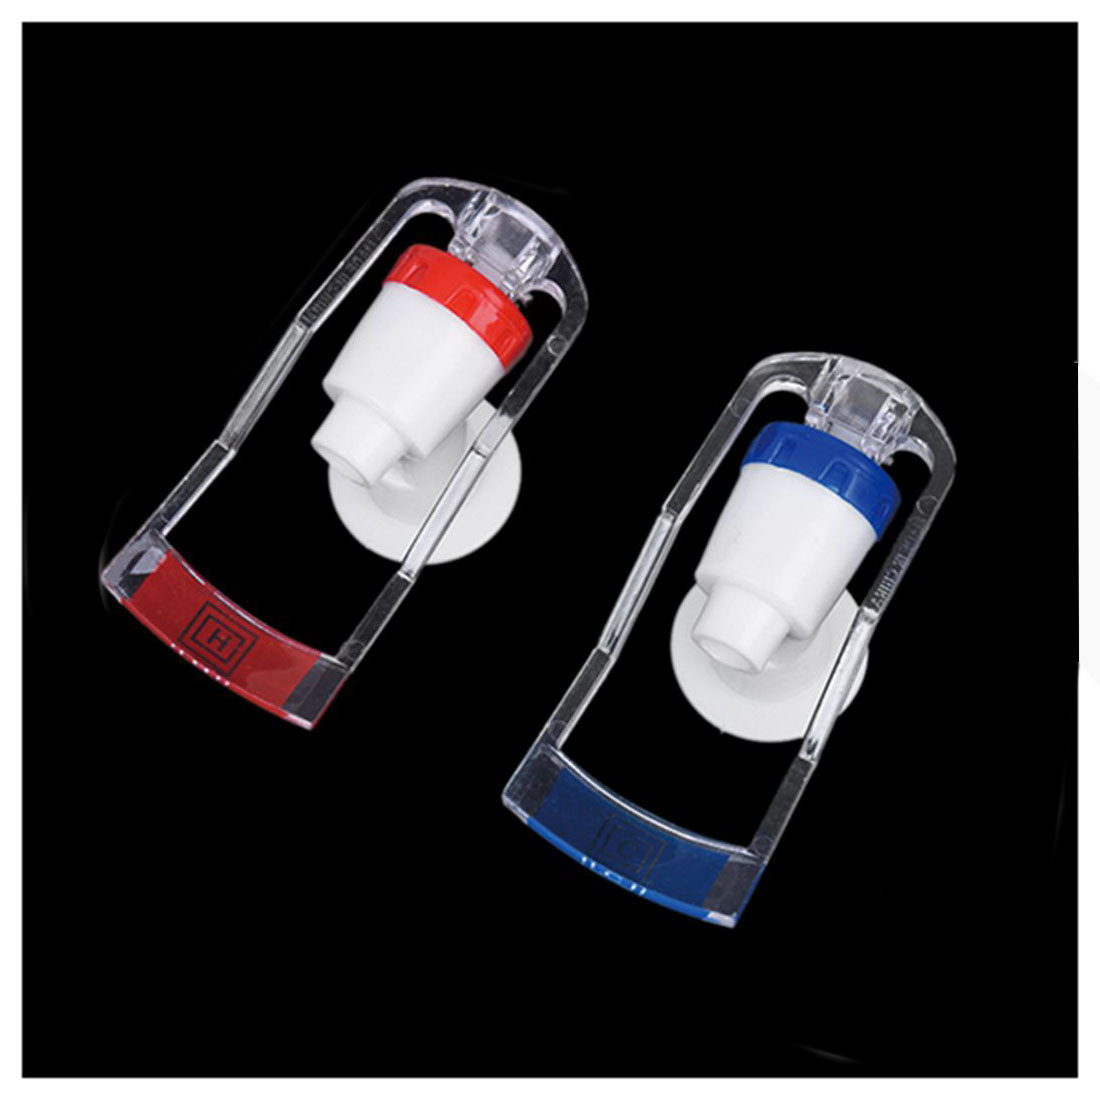 Steady Replacement Push Tap For Water Dispenser Plastic Dispenser White Red Blue (2 Pieces) Traveling